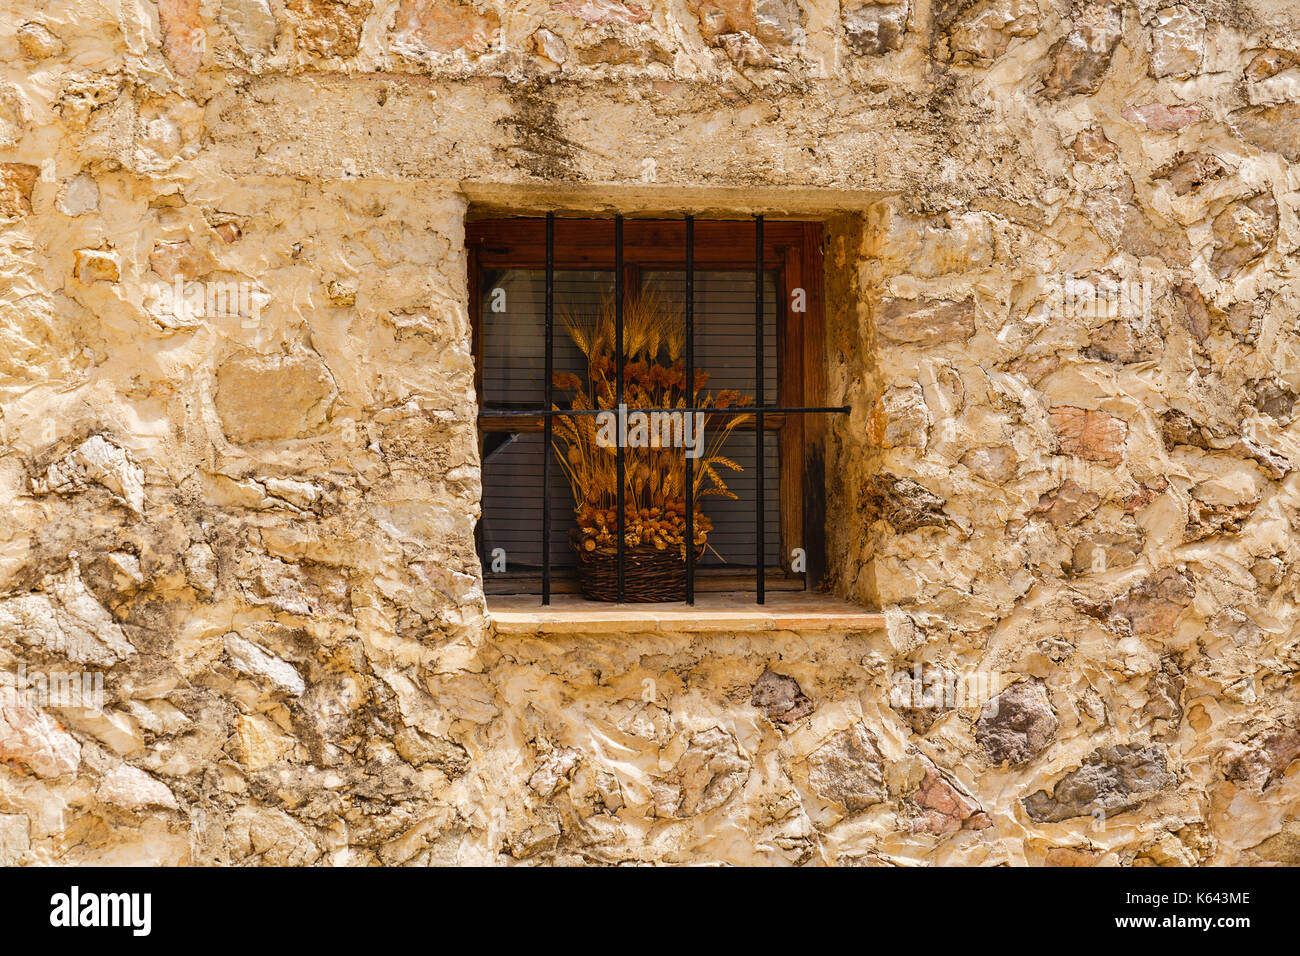 images from the city of Valldemossa in Palma de Mallorca. Spain (28-08-2017) Stock Photo